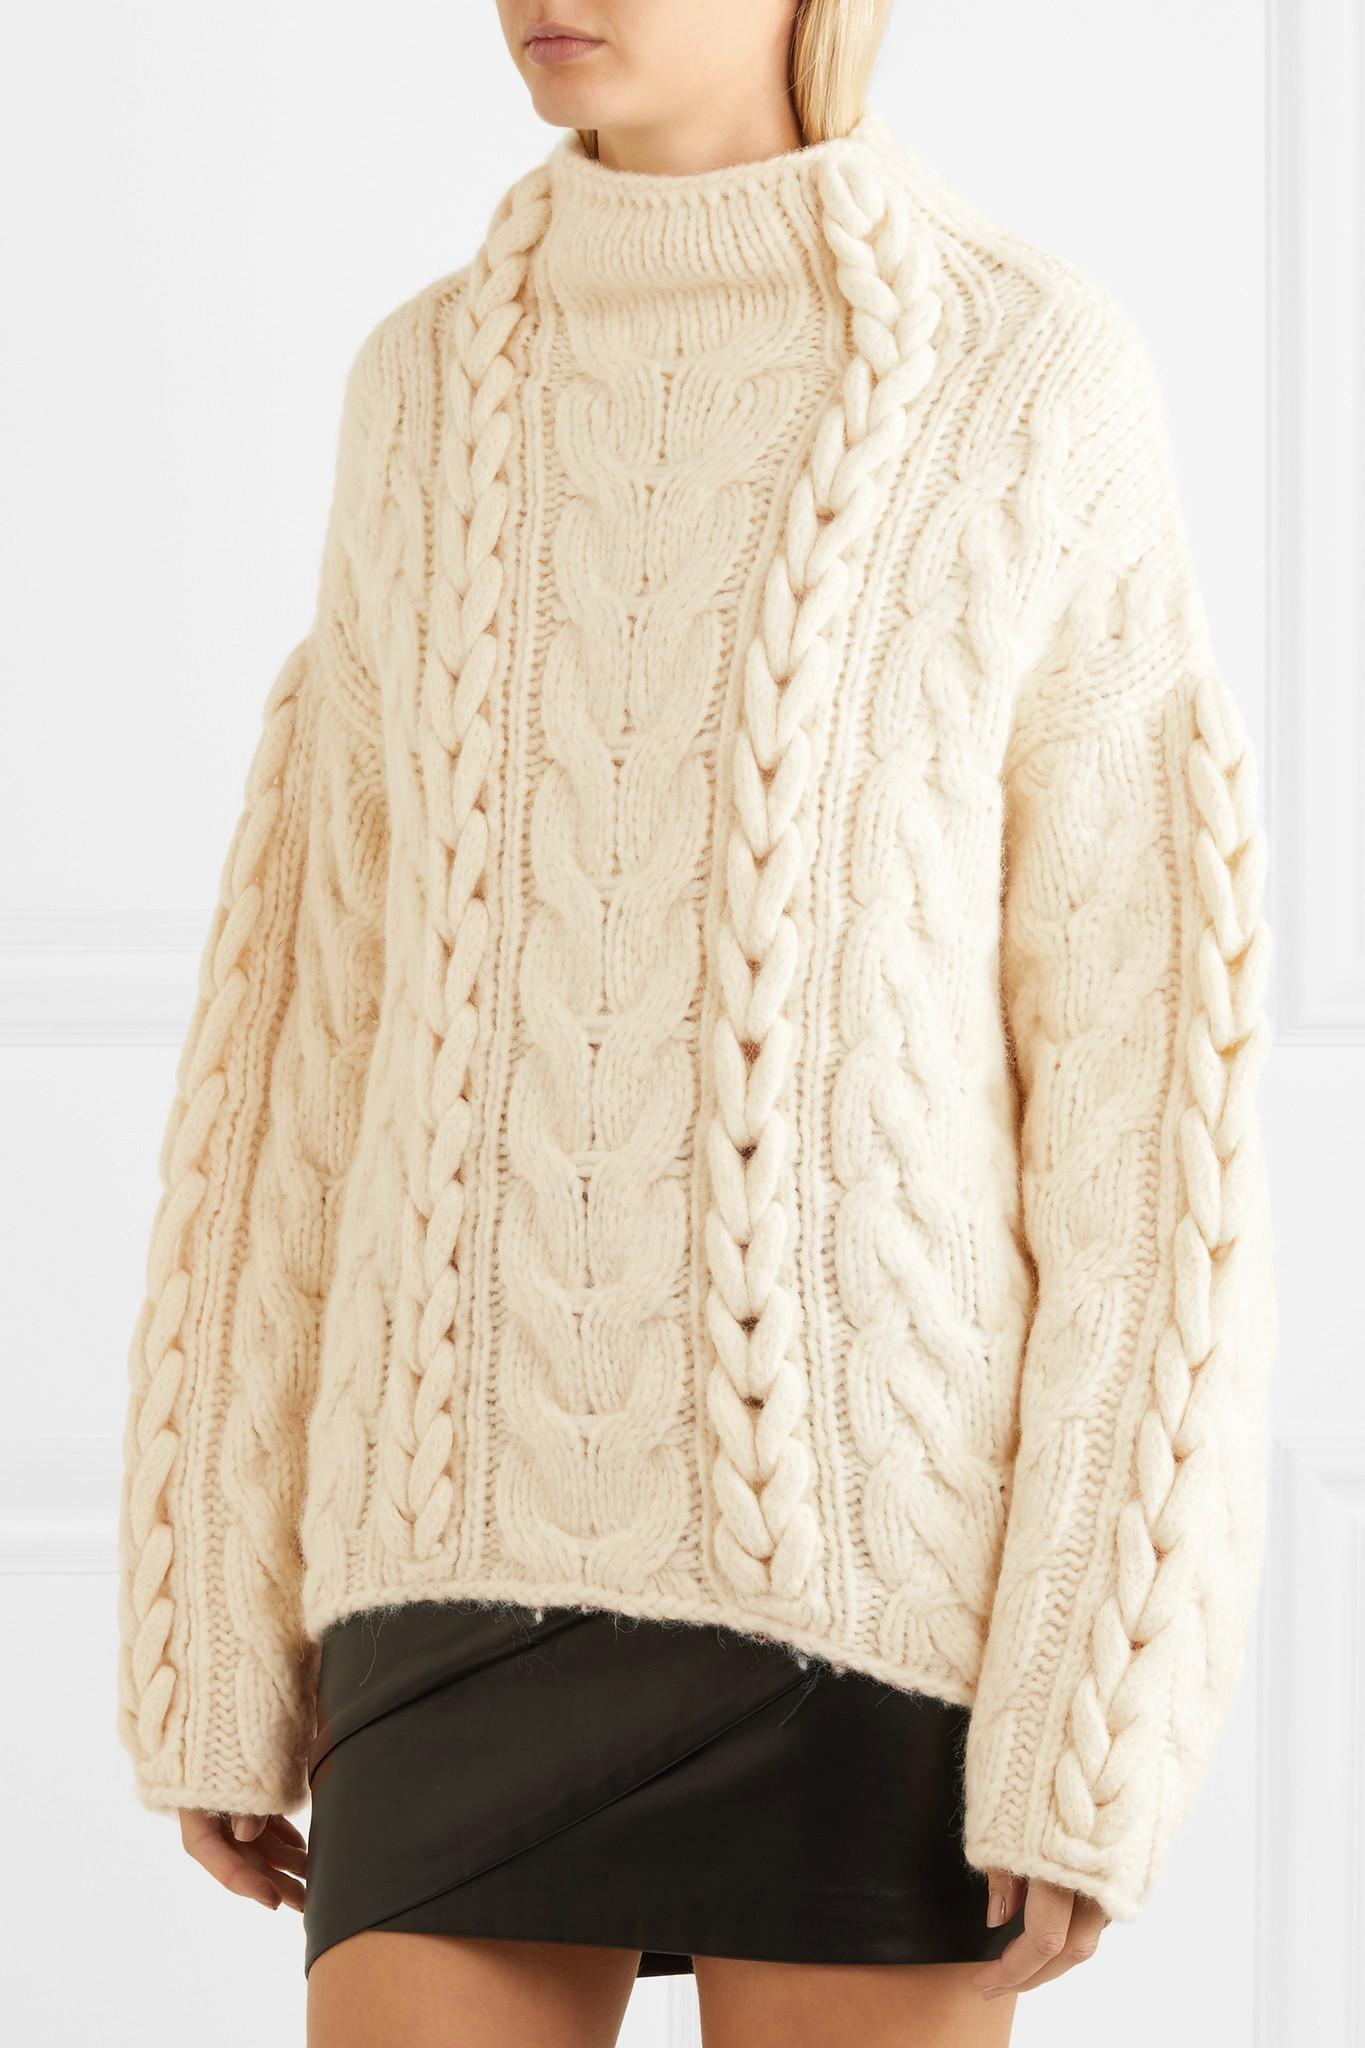 Iro Nijyn Oversized Cable-knit Alpaca-blend Sweater in Natural | Lyst